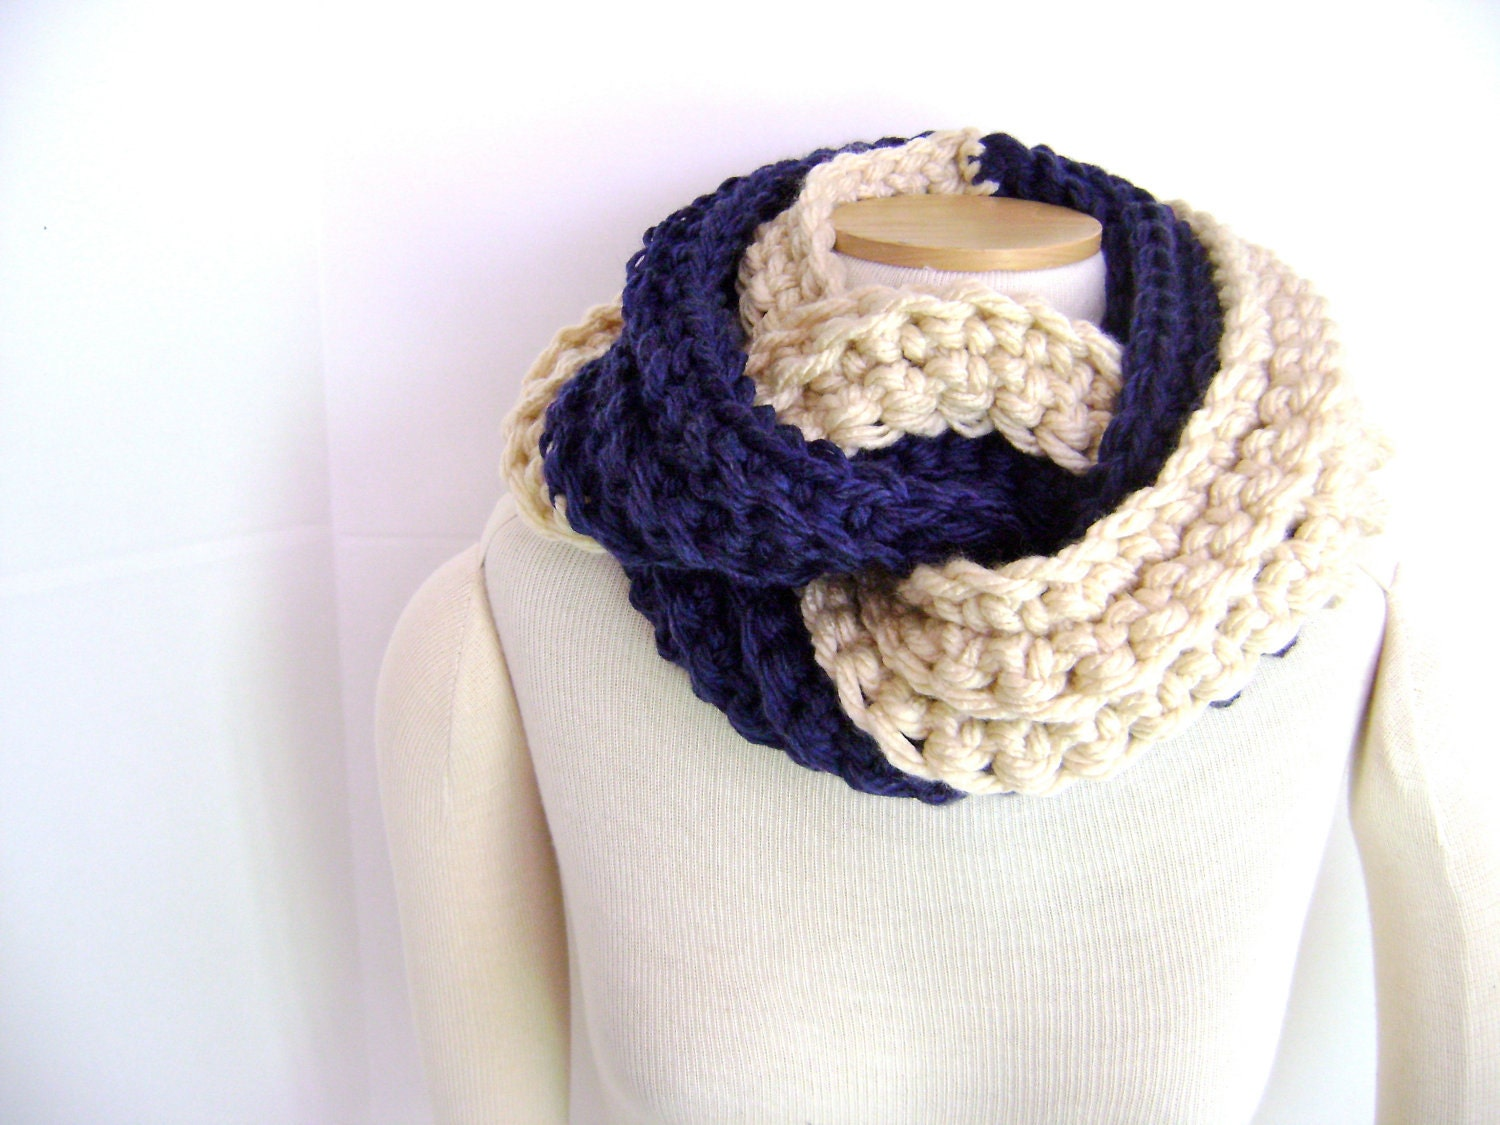 Crochet Scarf Pattern Thick Yarn : Crochet PATTERN for Chunky Twist Scarf Cowl Great for the